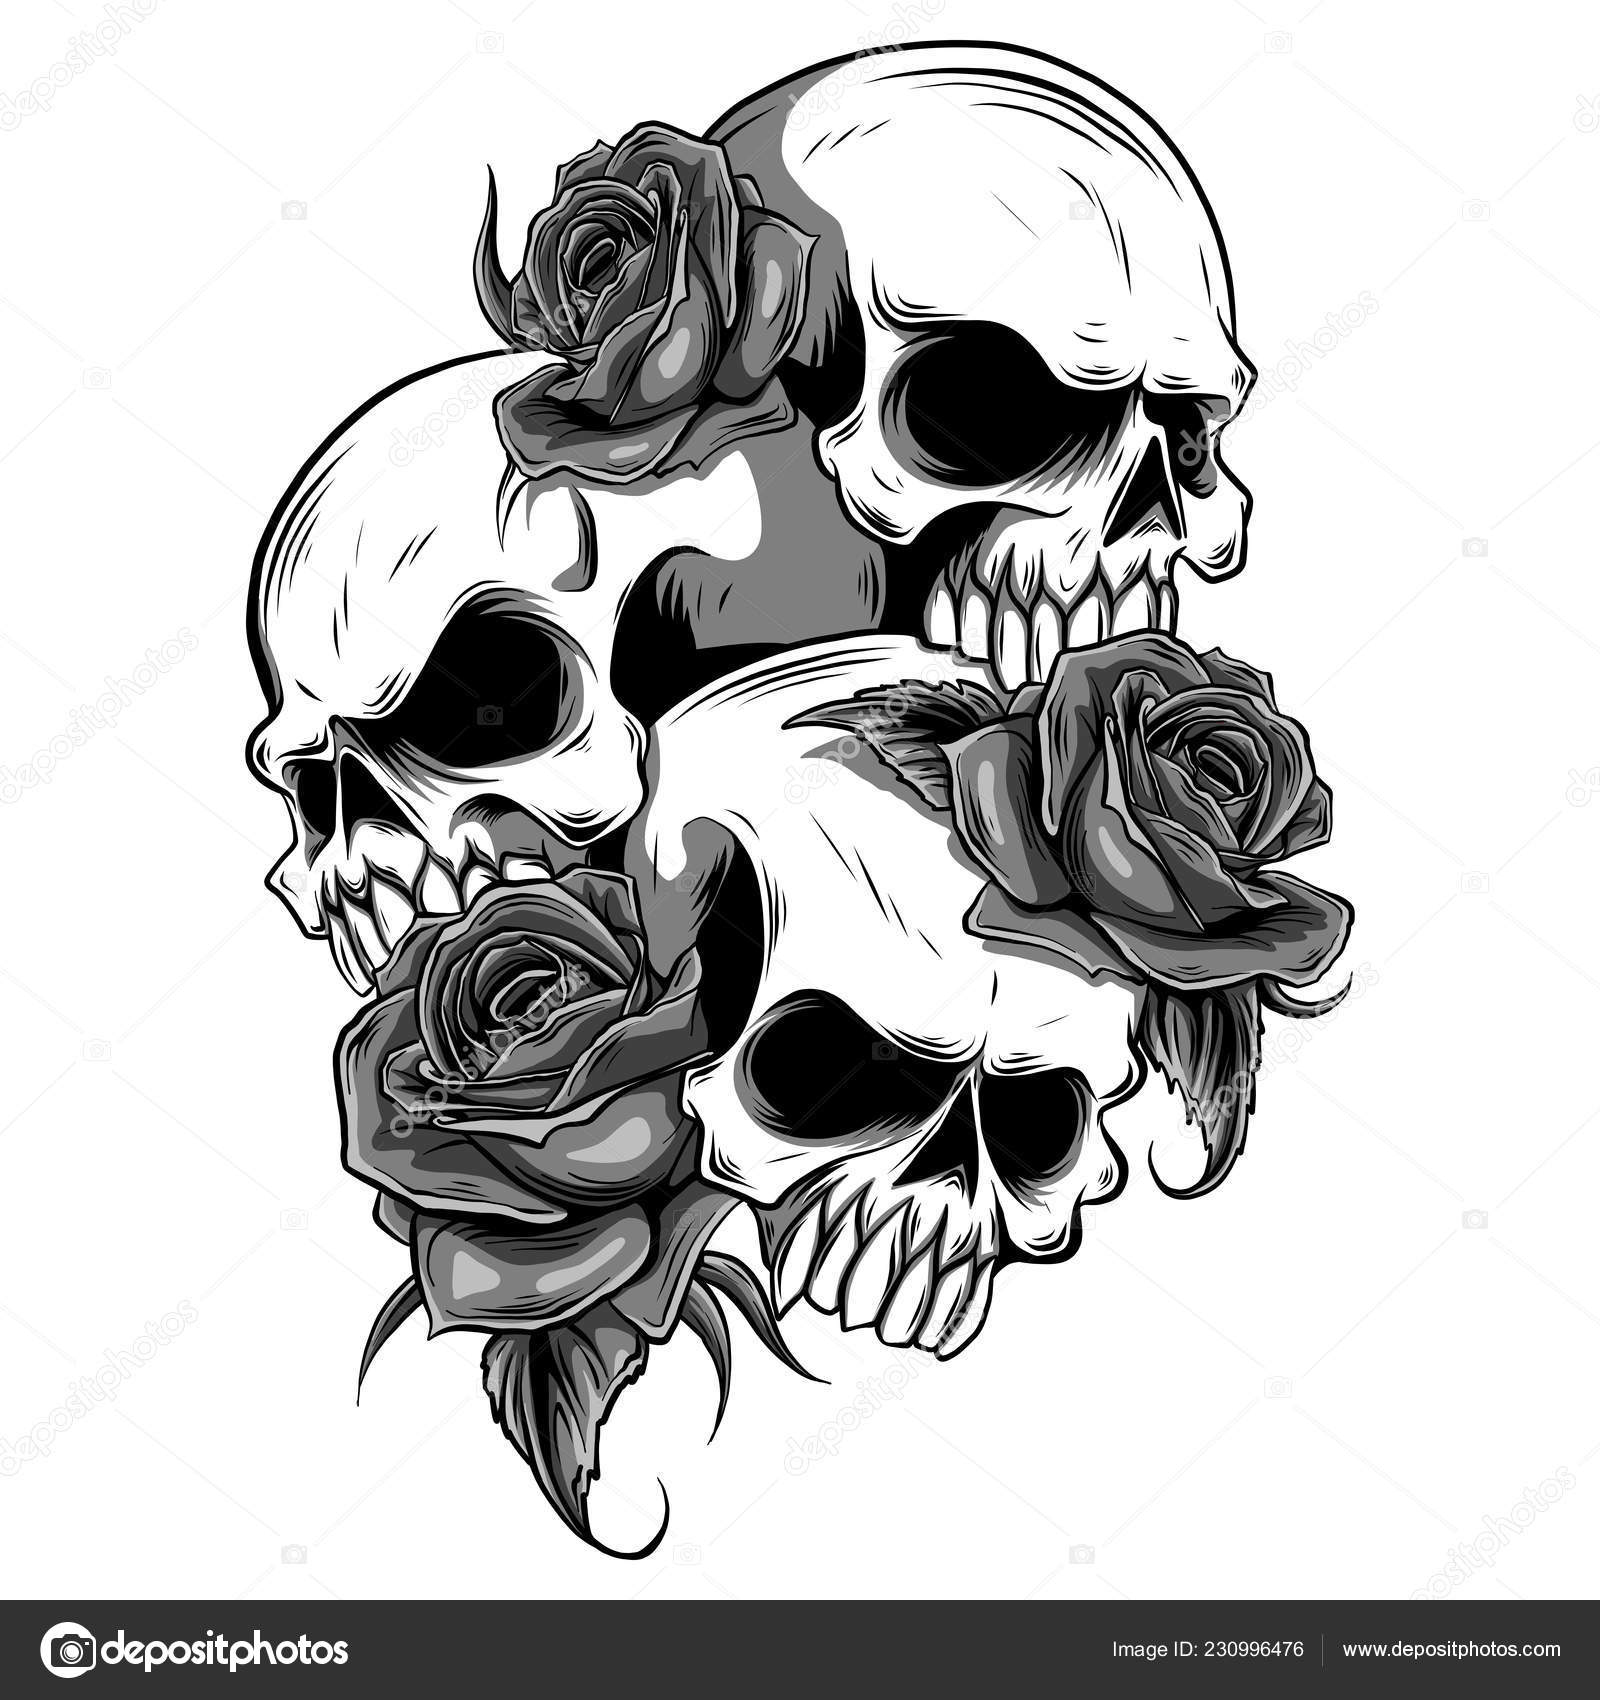 Human Skull Roses Drawn Tattoo Style Stock Vector C Deanzangir